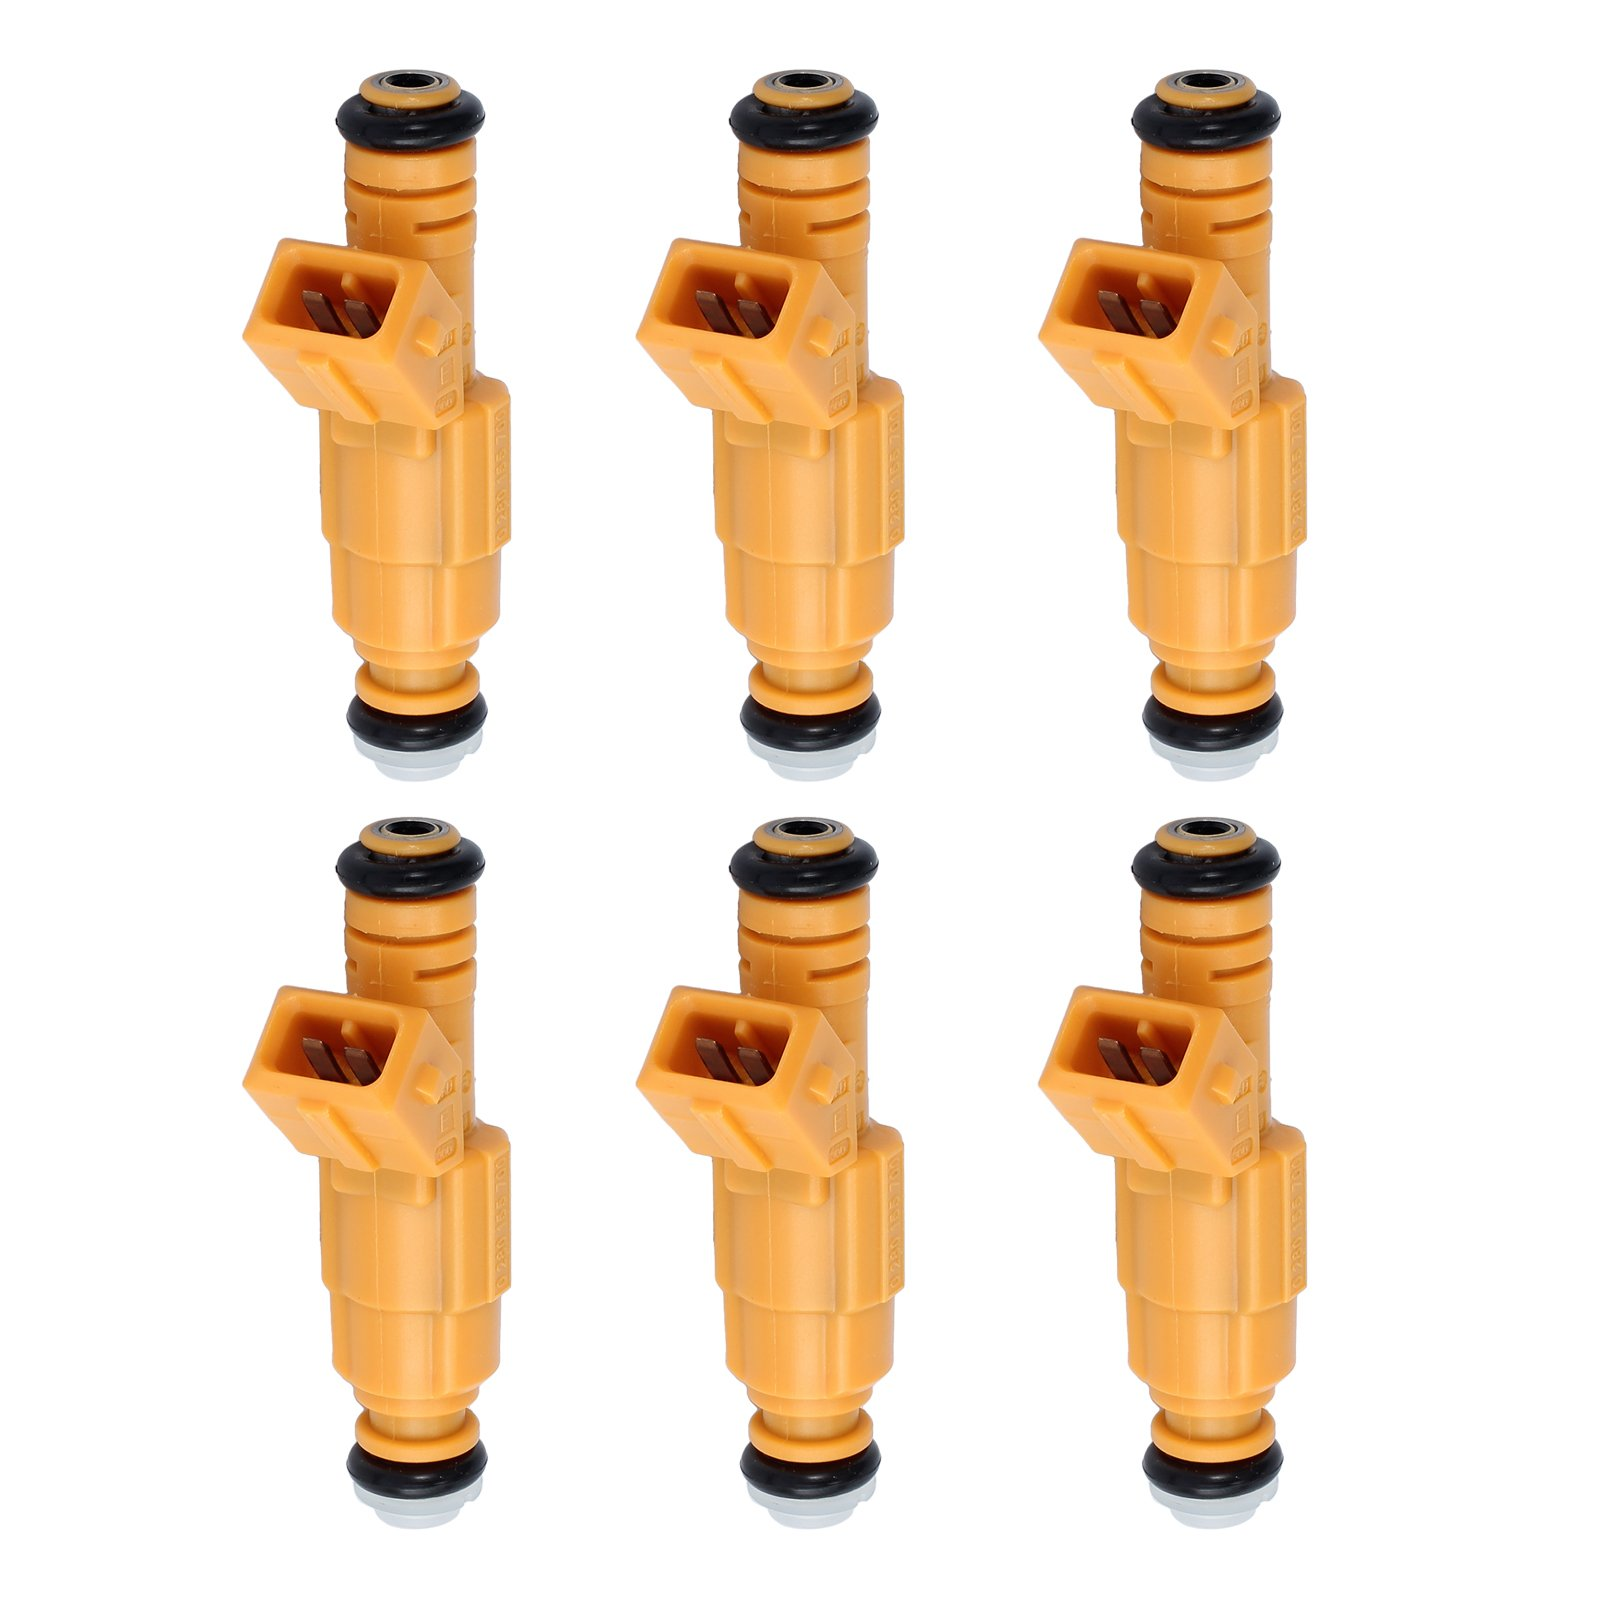 Neoteck 6pcs Fuel Injectors 4Hole For Jeep 87-98 4.0L Replace 0280155710 0280155700 by Neoteck